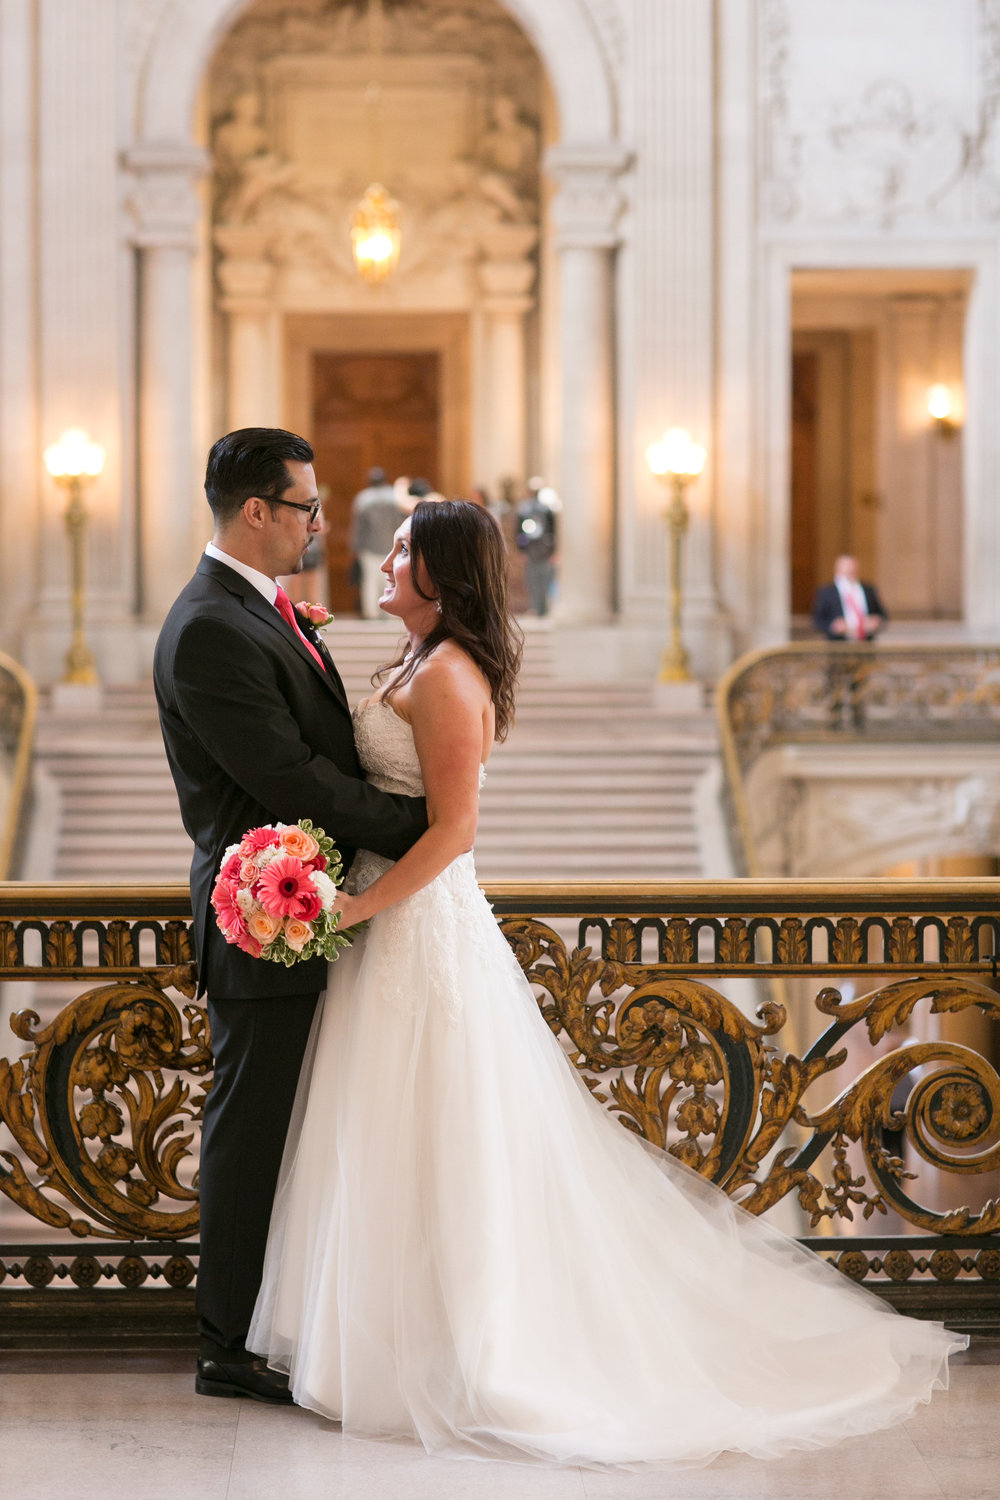 san francisco city hall wedding david kim photography 5.jpg